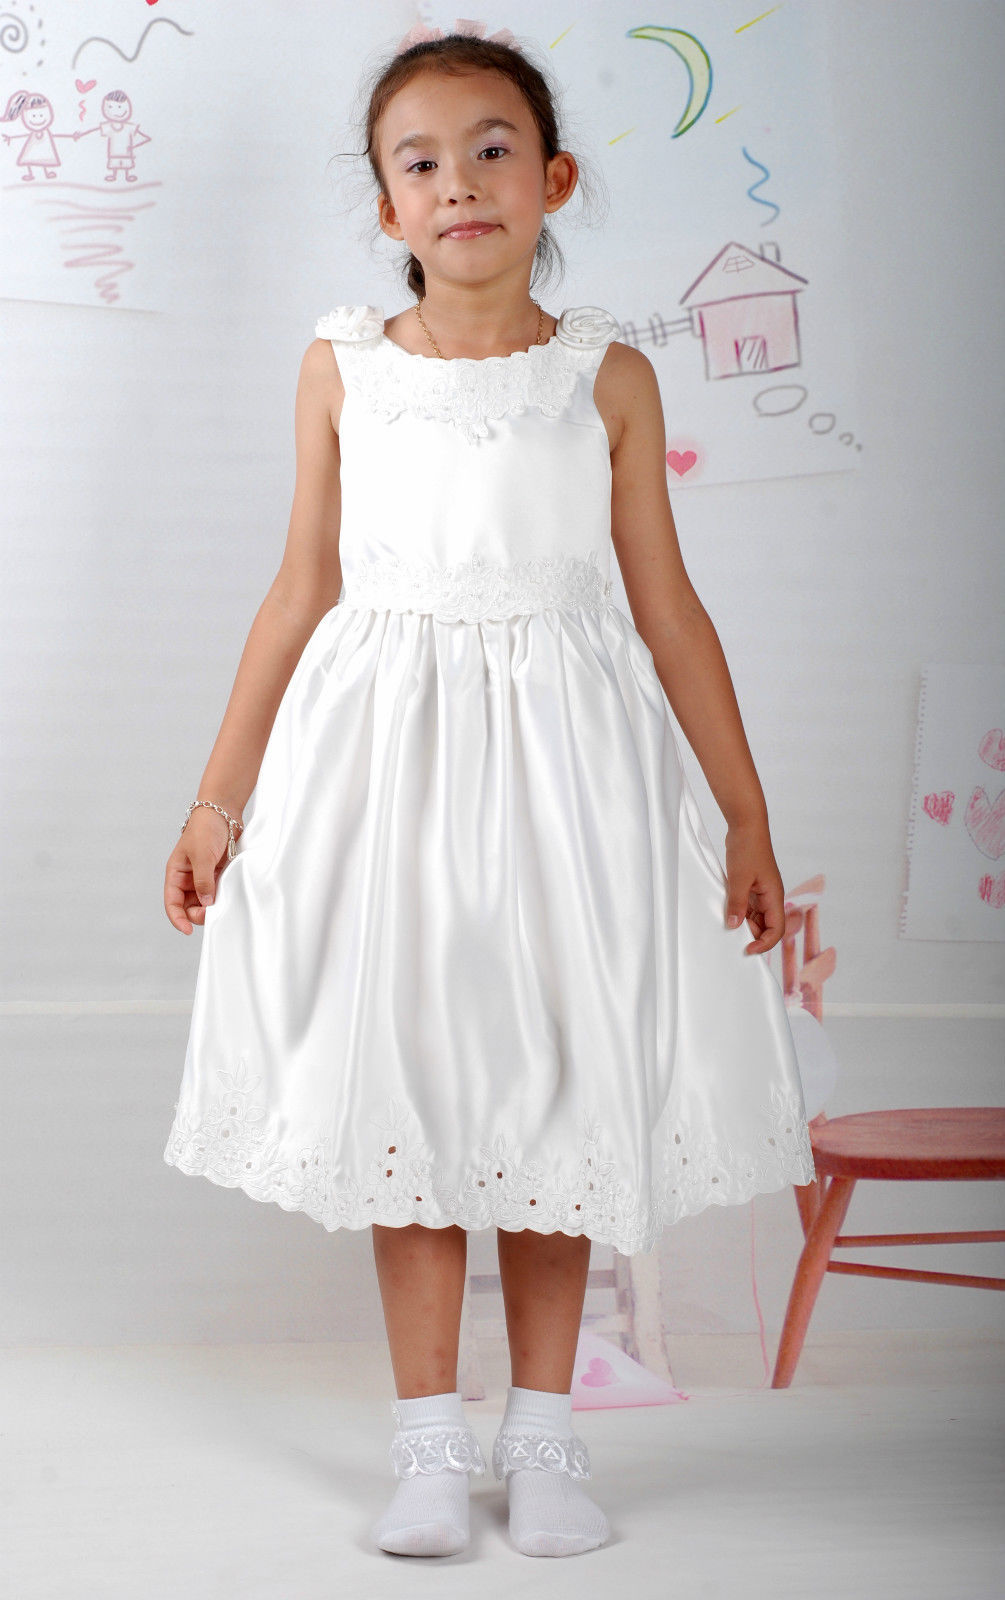 New Satin Flower Girl Party Bridesmaid Wedding Pageant Dress 18 Month to 5 Years image 4